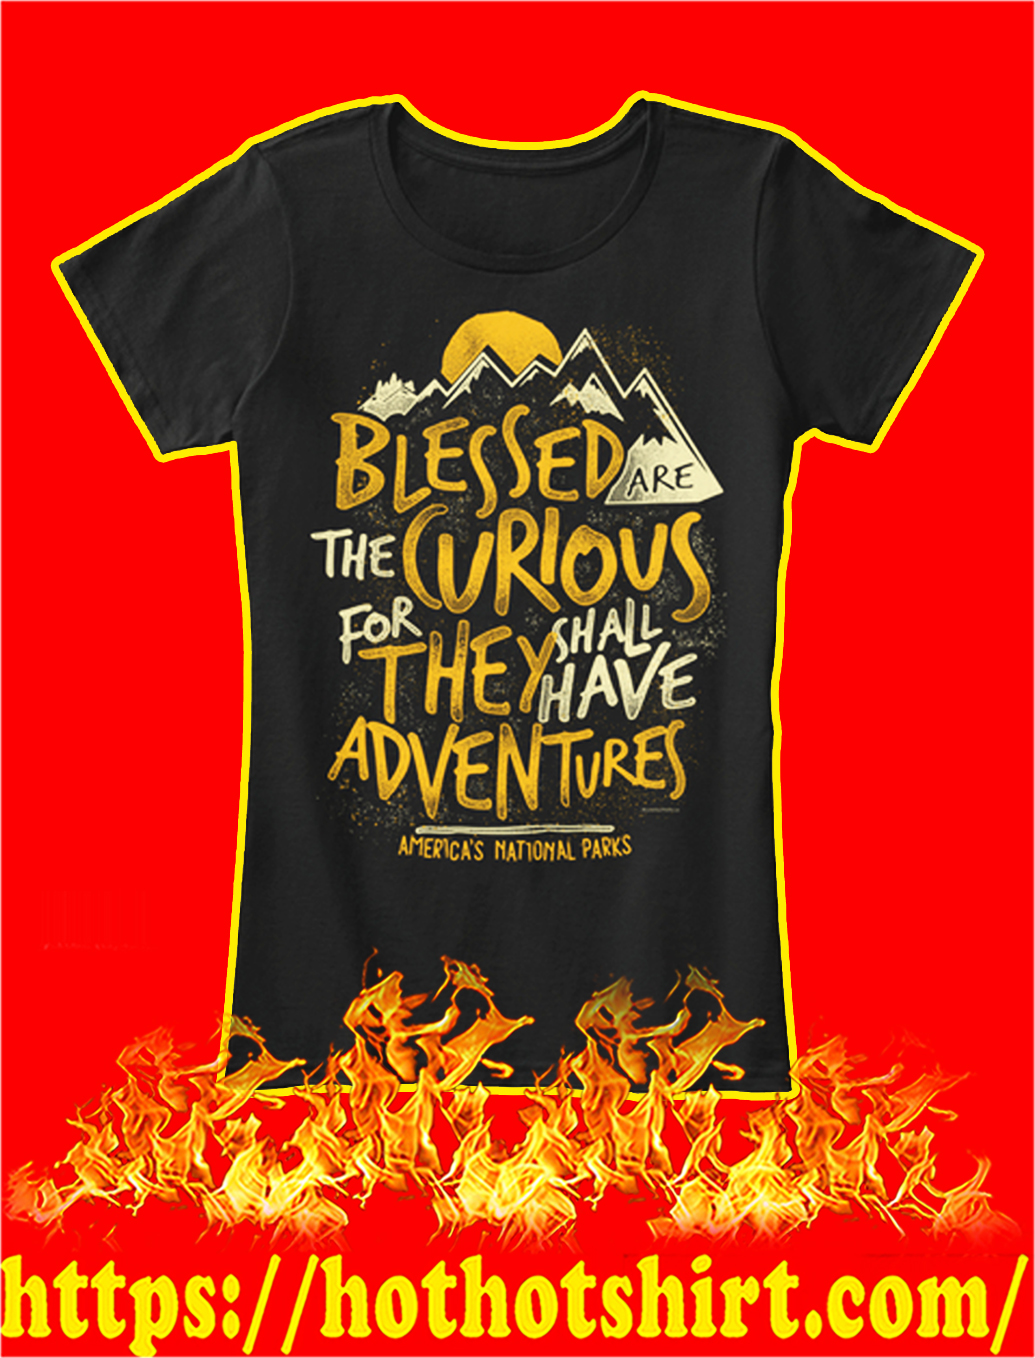 America's national parks Blessed are the curious for they shall have adventures lady shirt